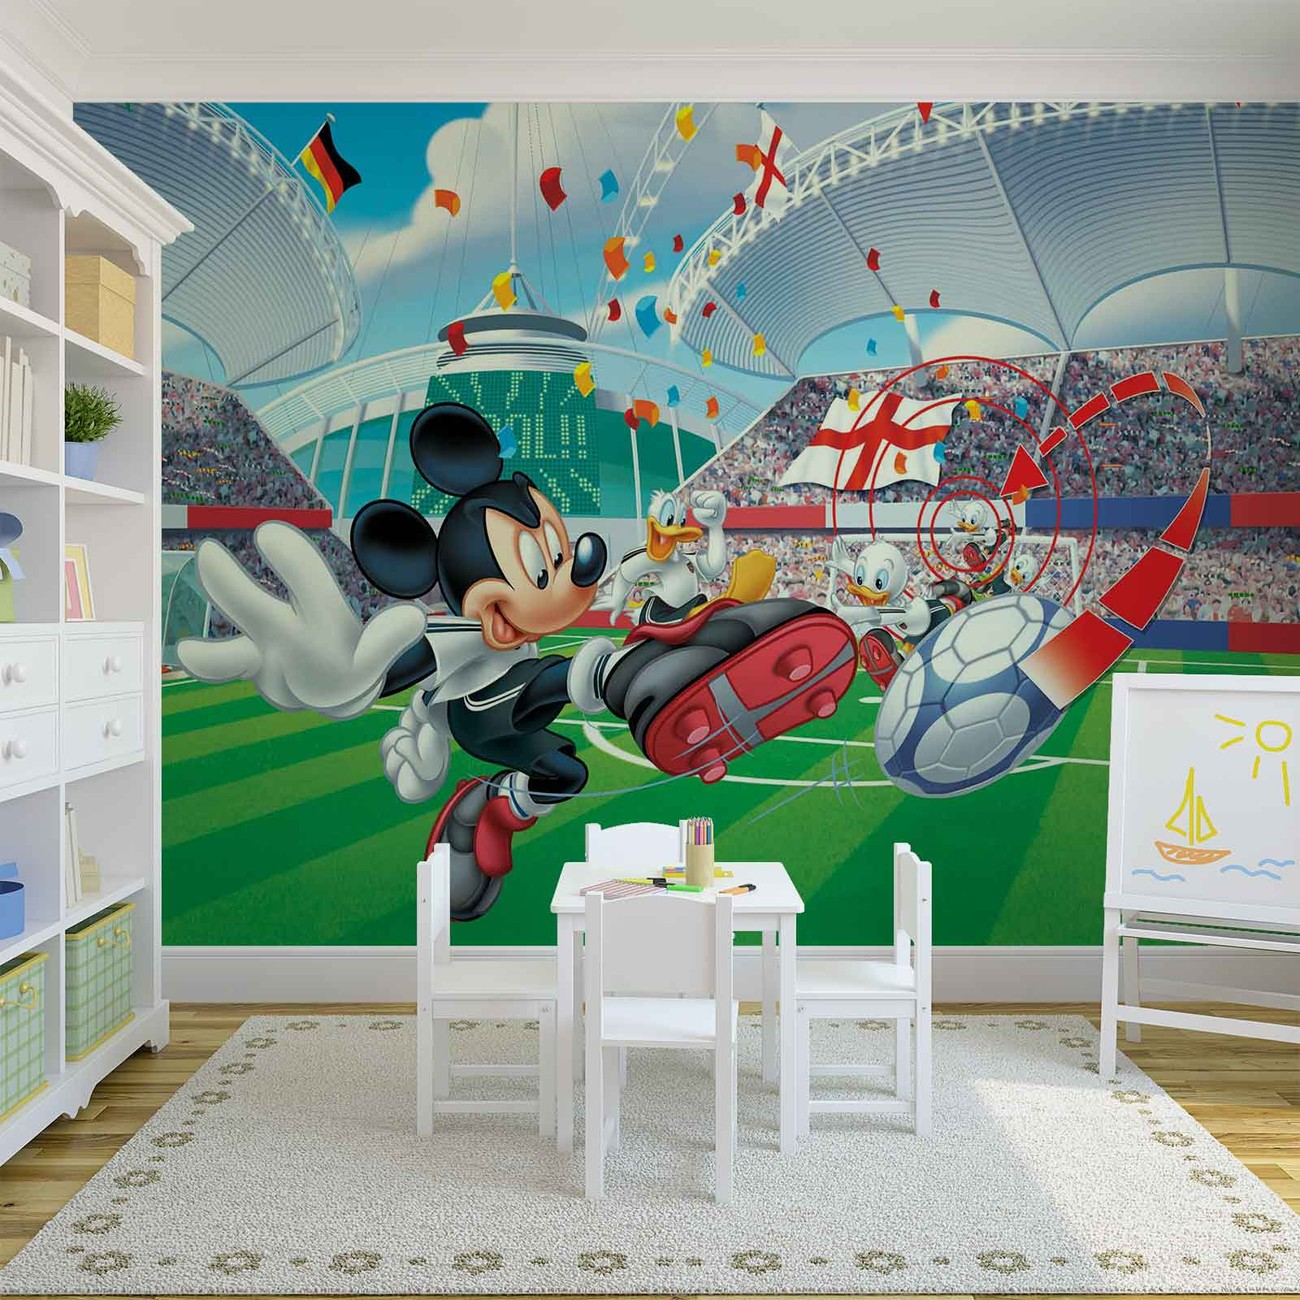 fototapete tapete disney micky maus bei europosters. Black Bedroom Furniture Sets. Home Design Ideas